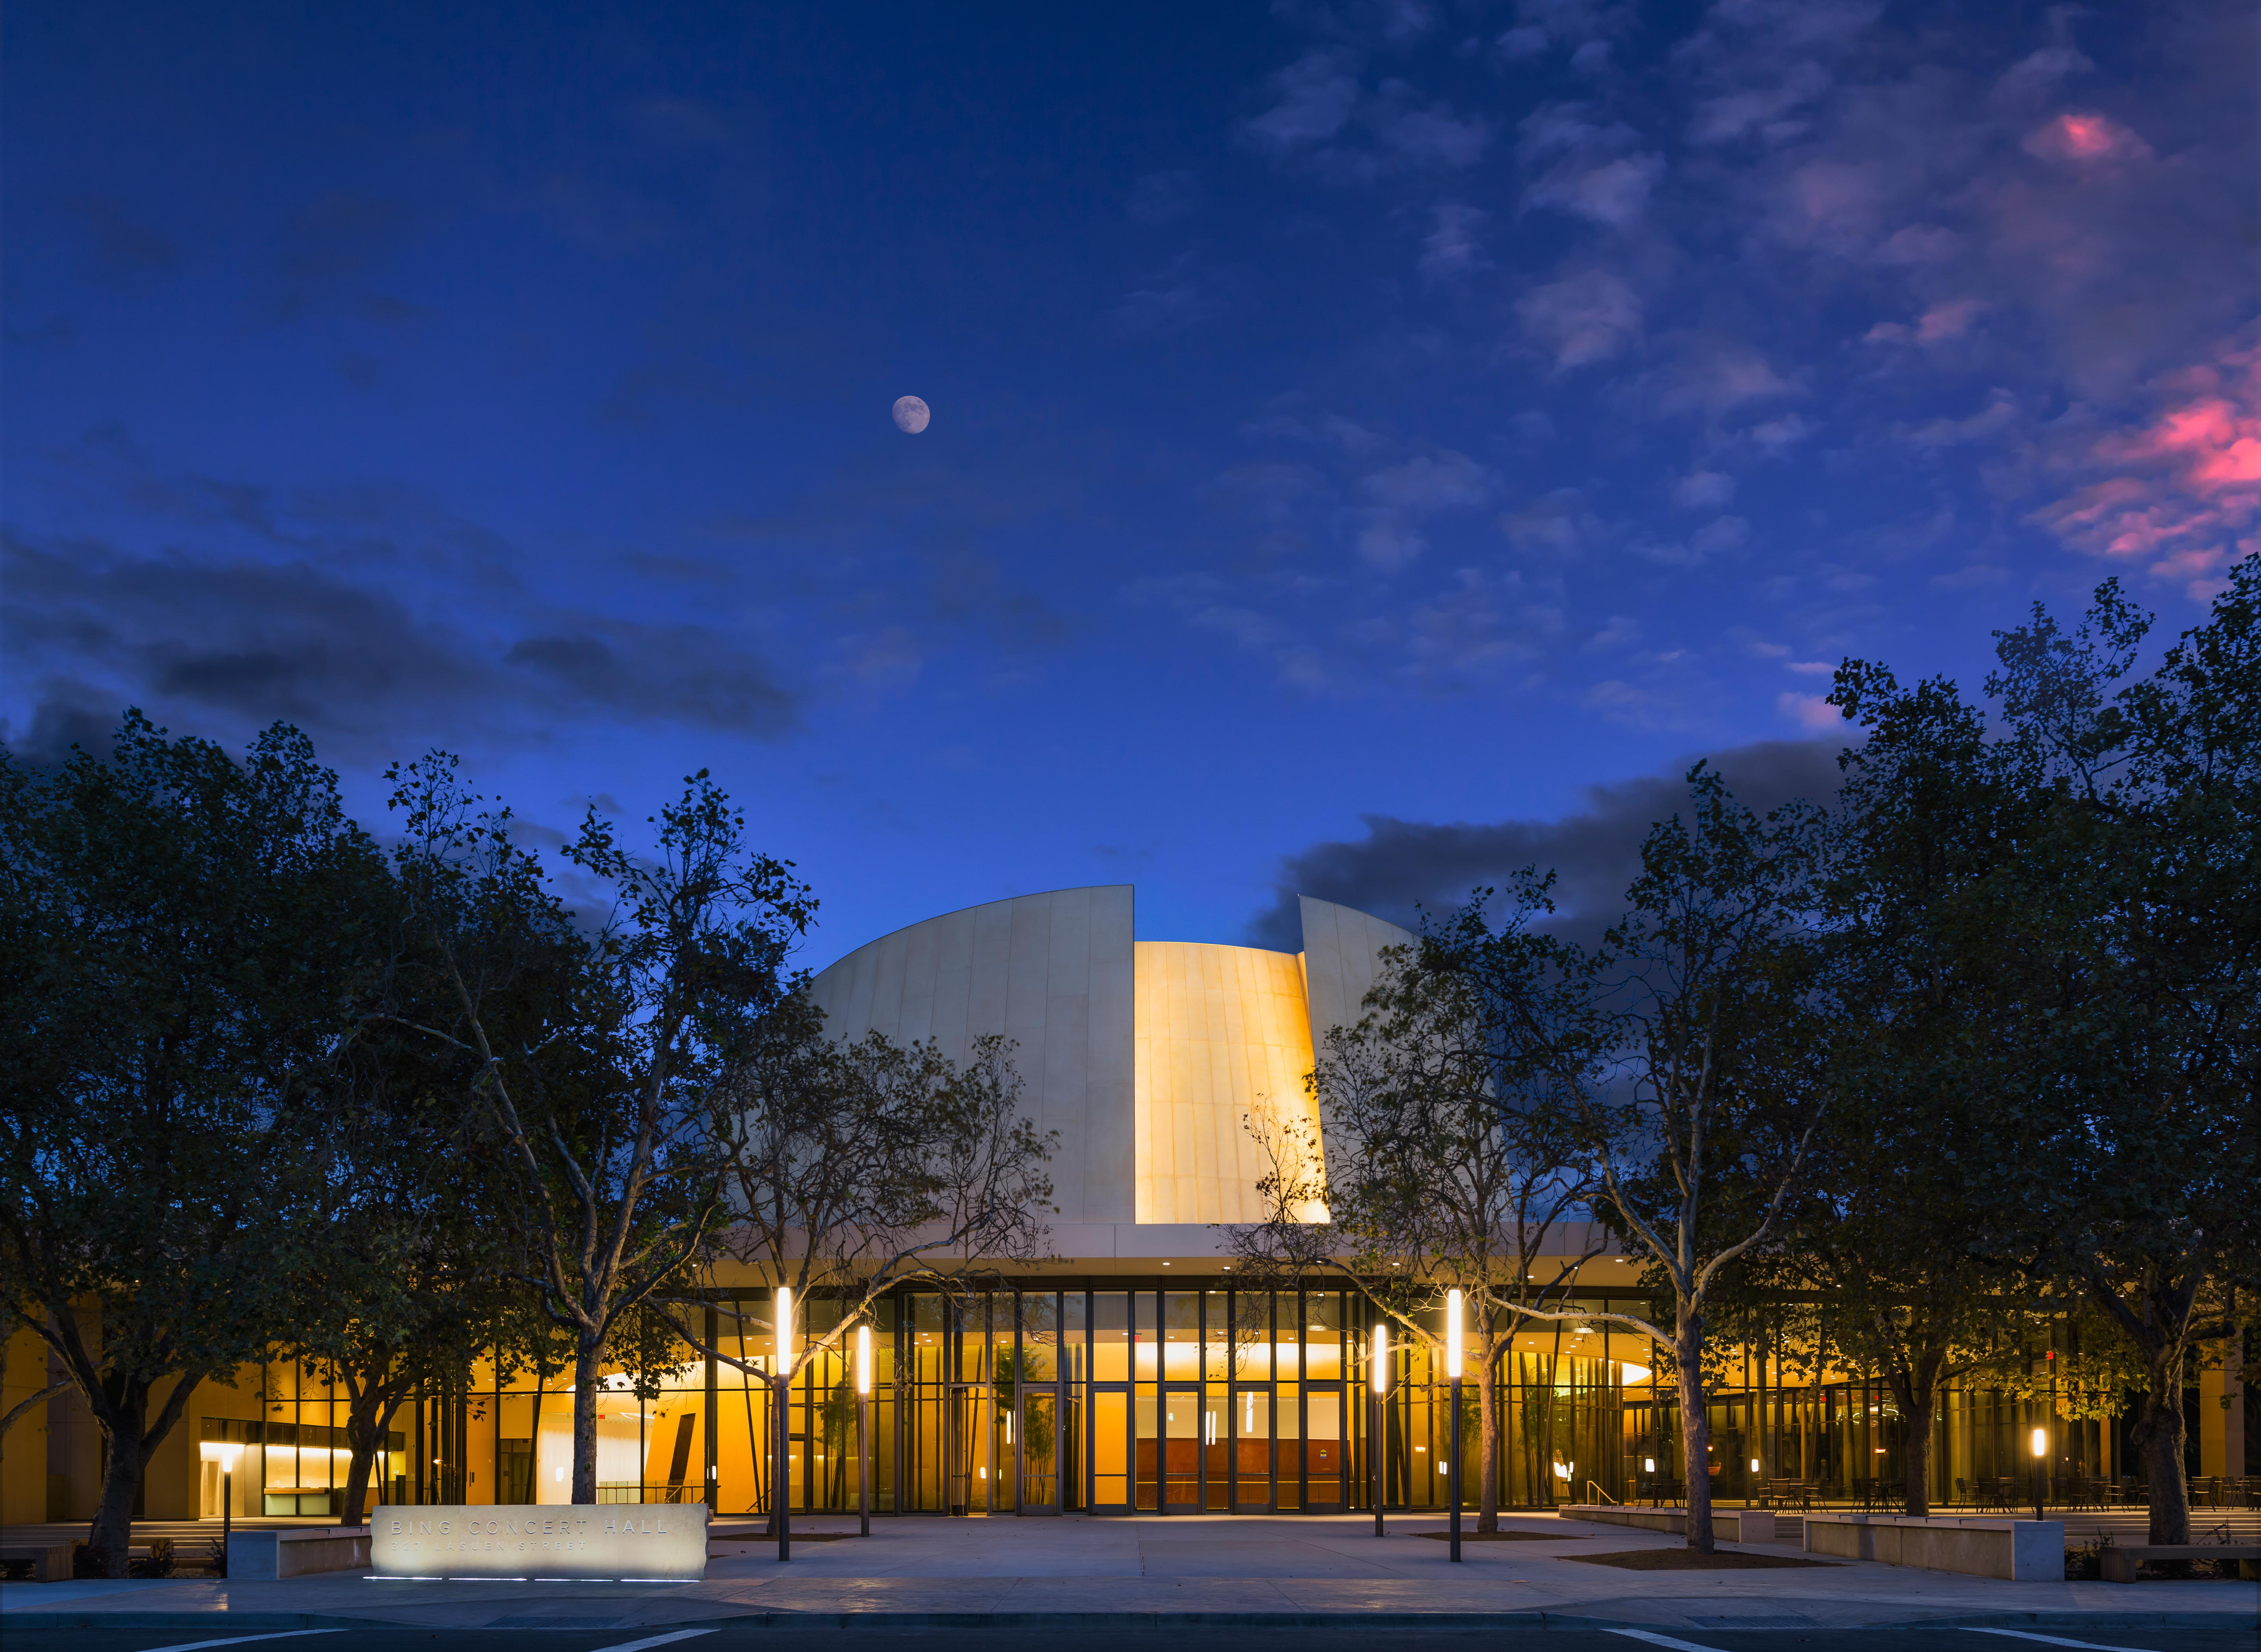 Image of Bing Concert Hall, Stanford